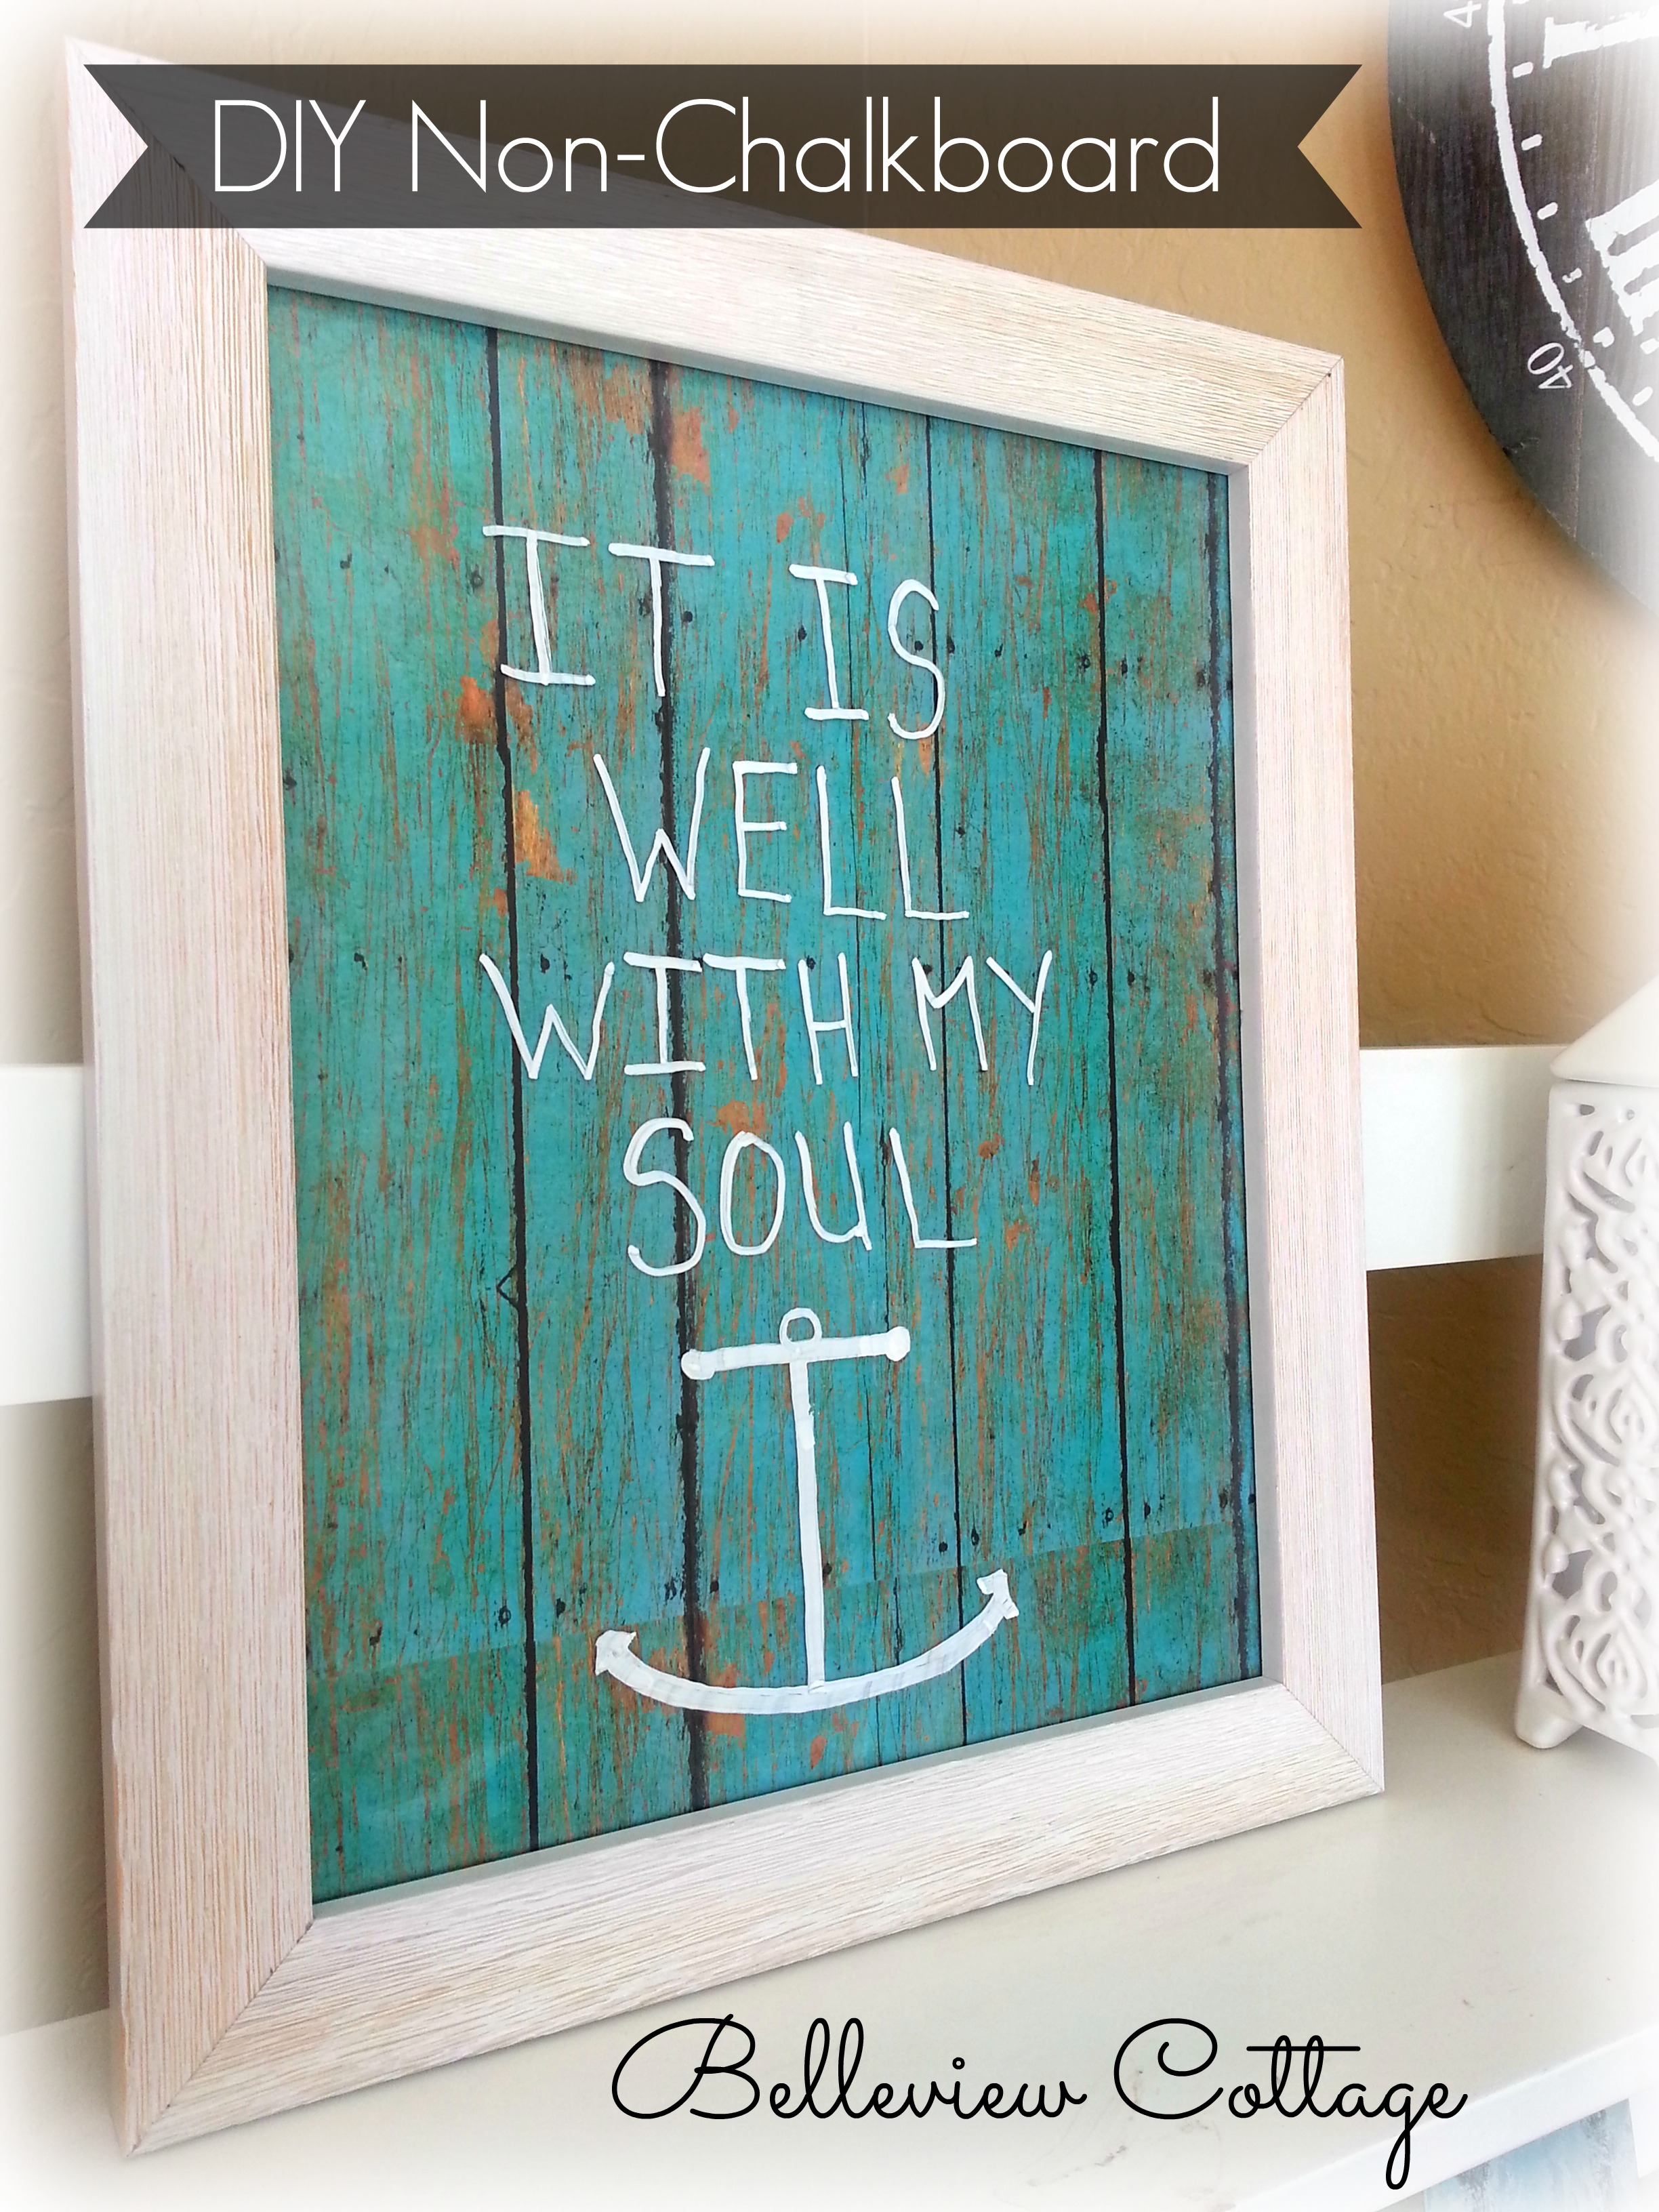 """DIY Decorative """"Non-Chalkboard"""" Message Boards – Dwelling Well"""